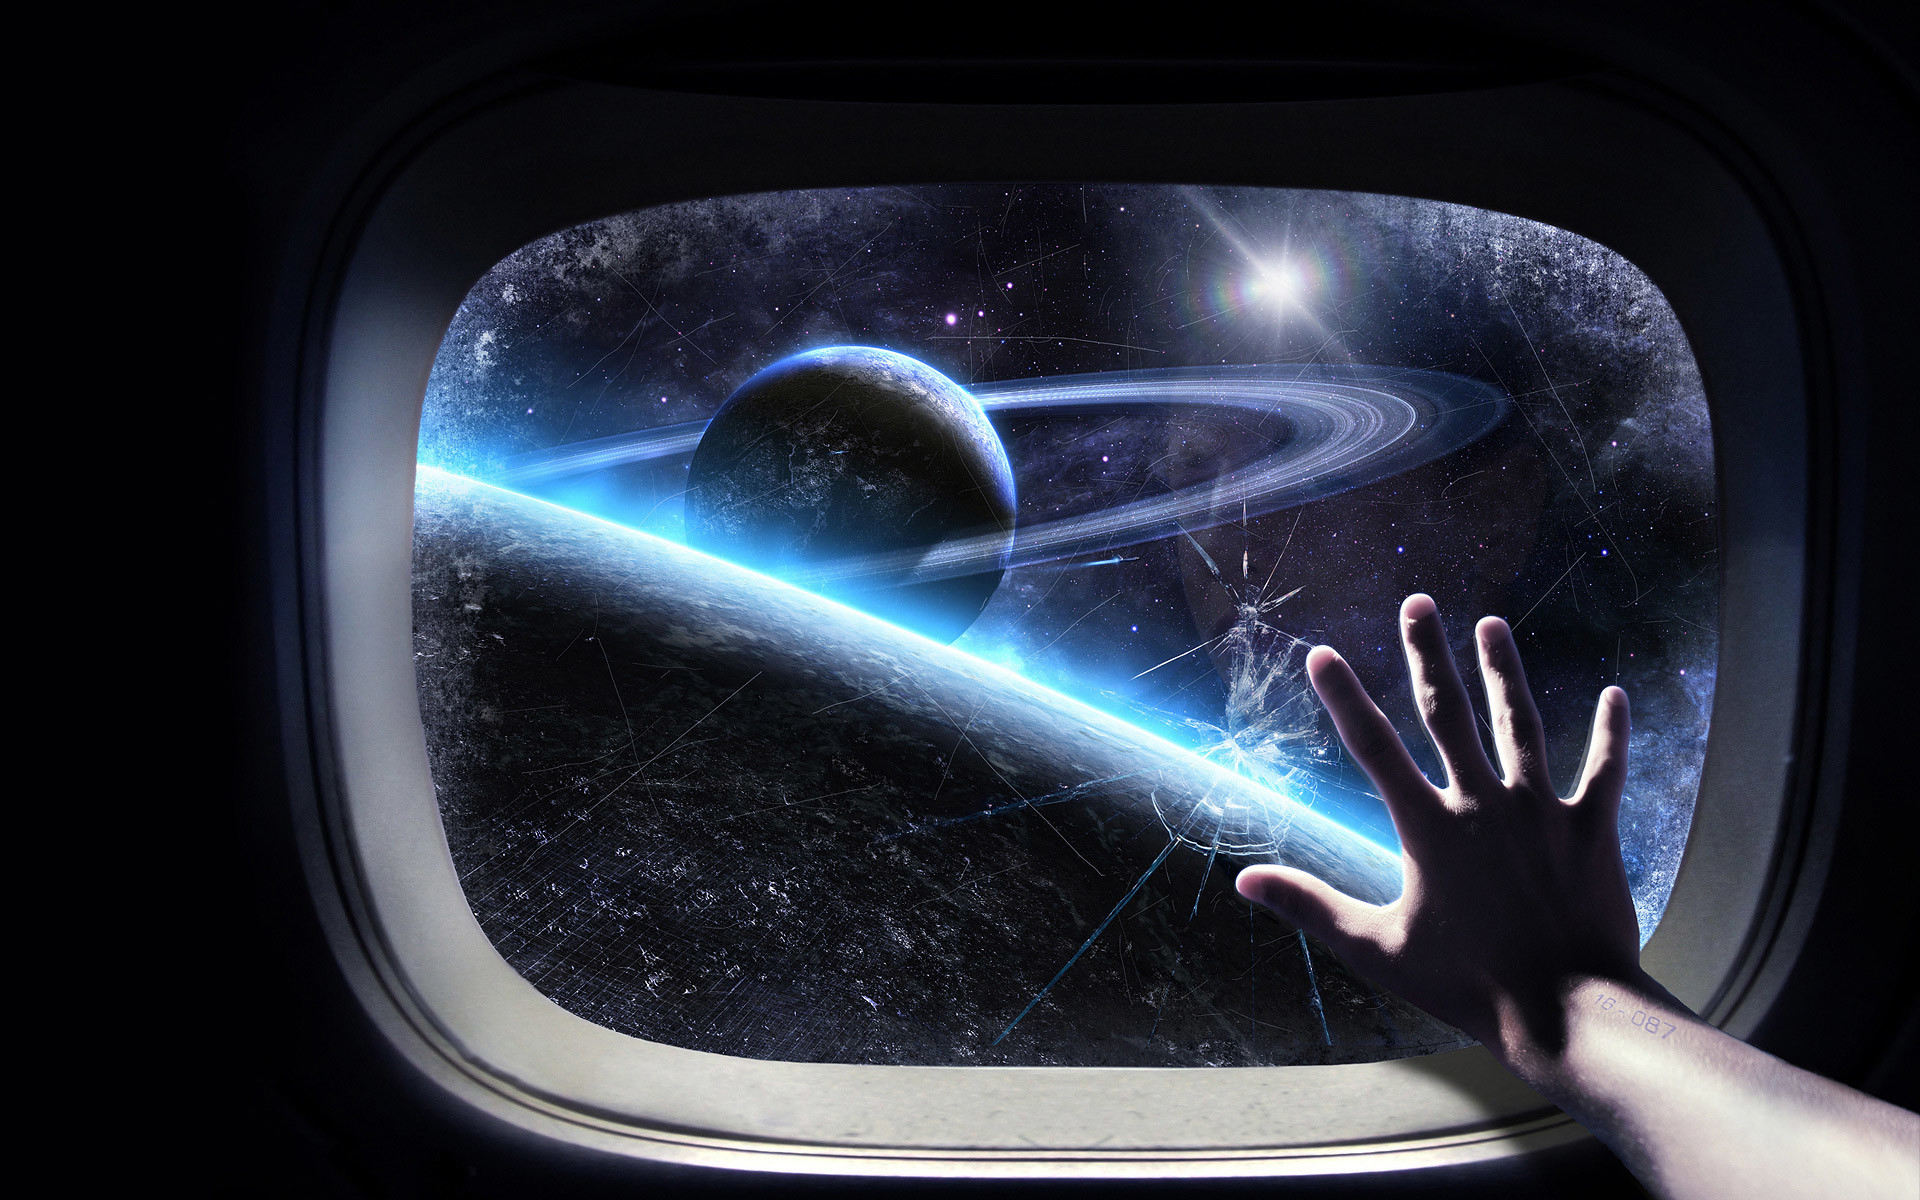 #6325002 Space Widescreen Wallpaper for PC, Mobile